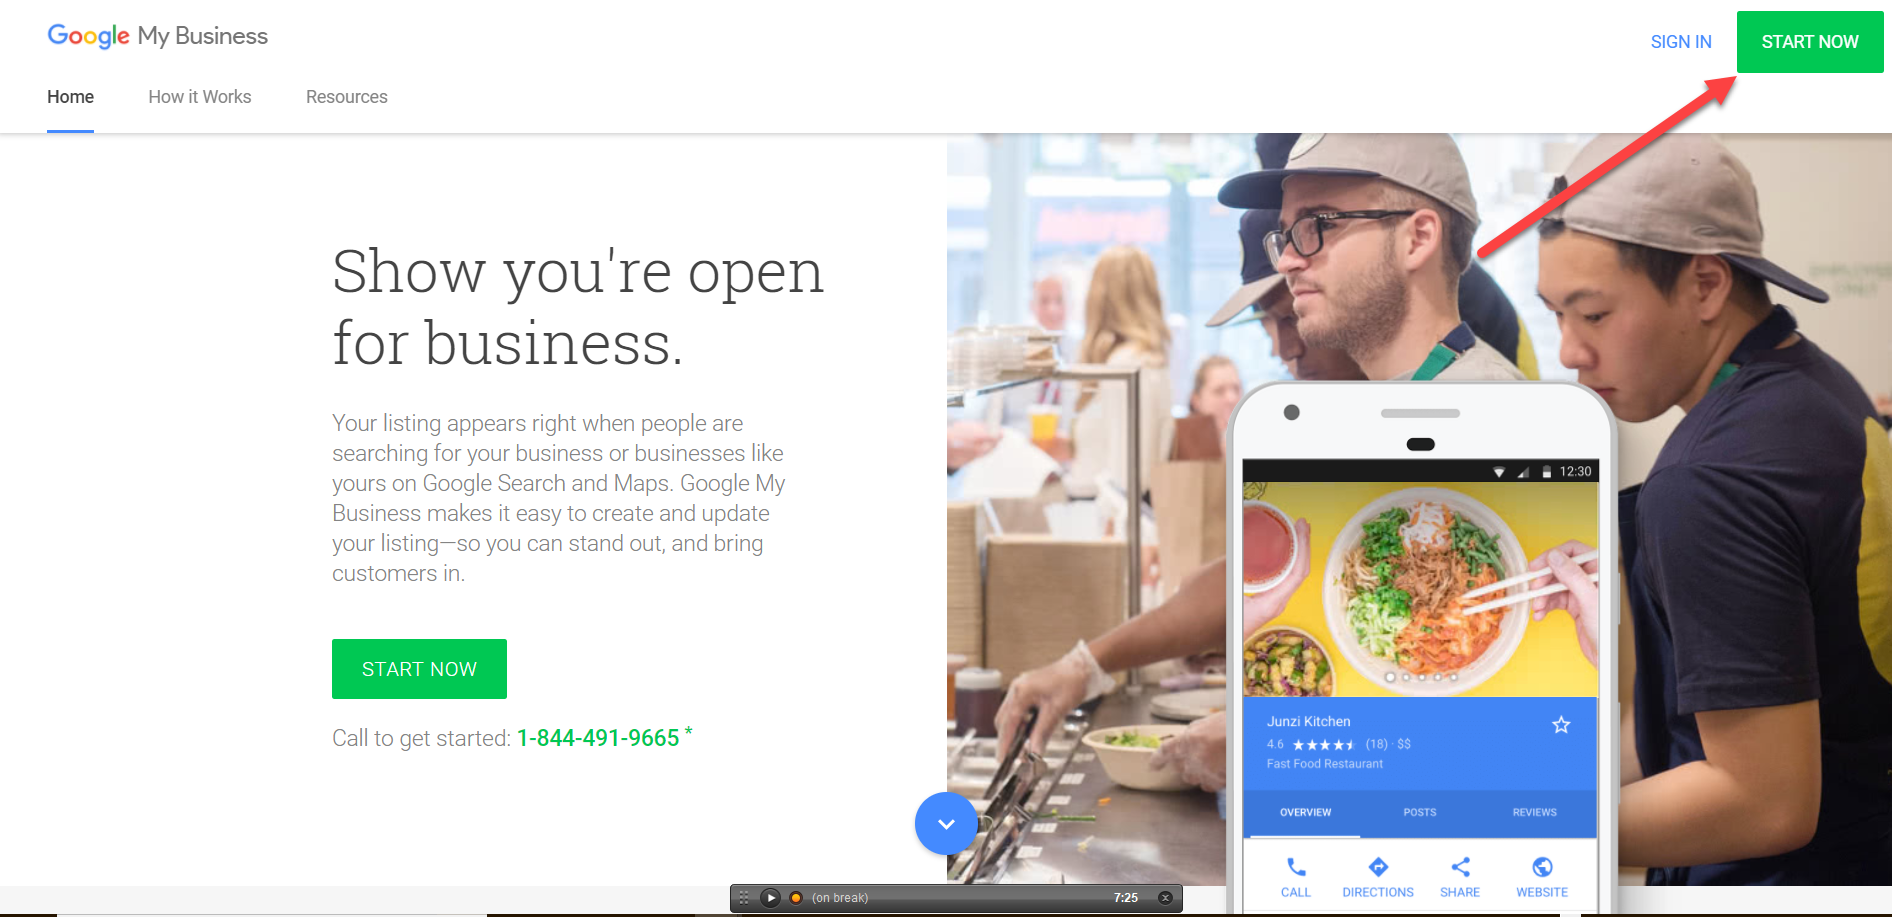 Google My Business welcome page